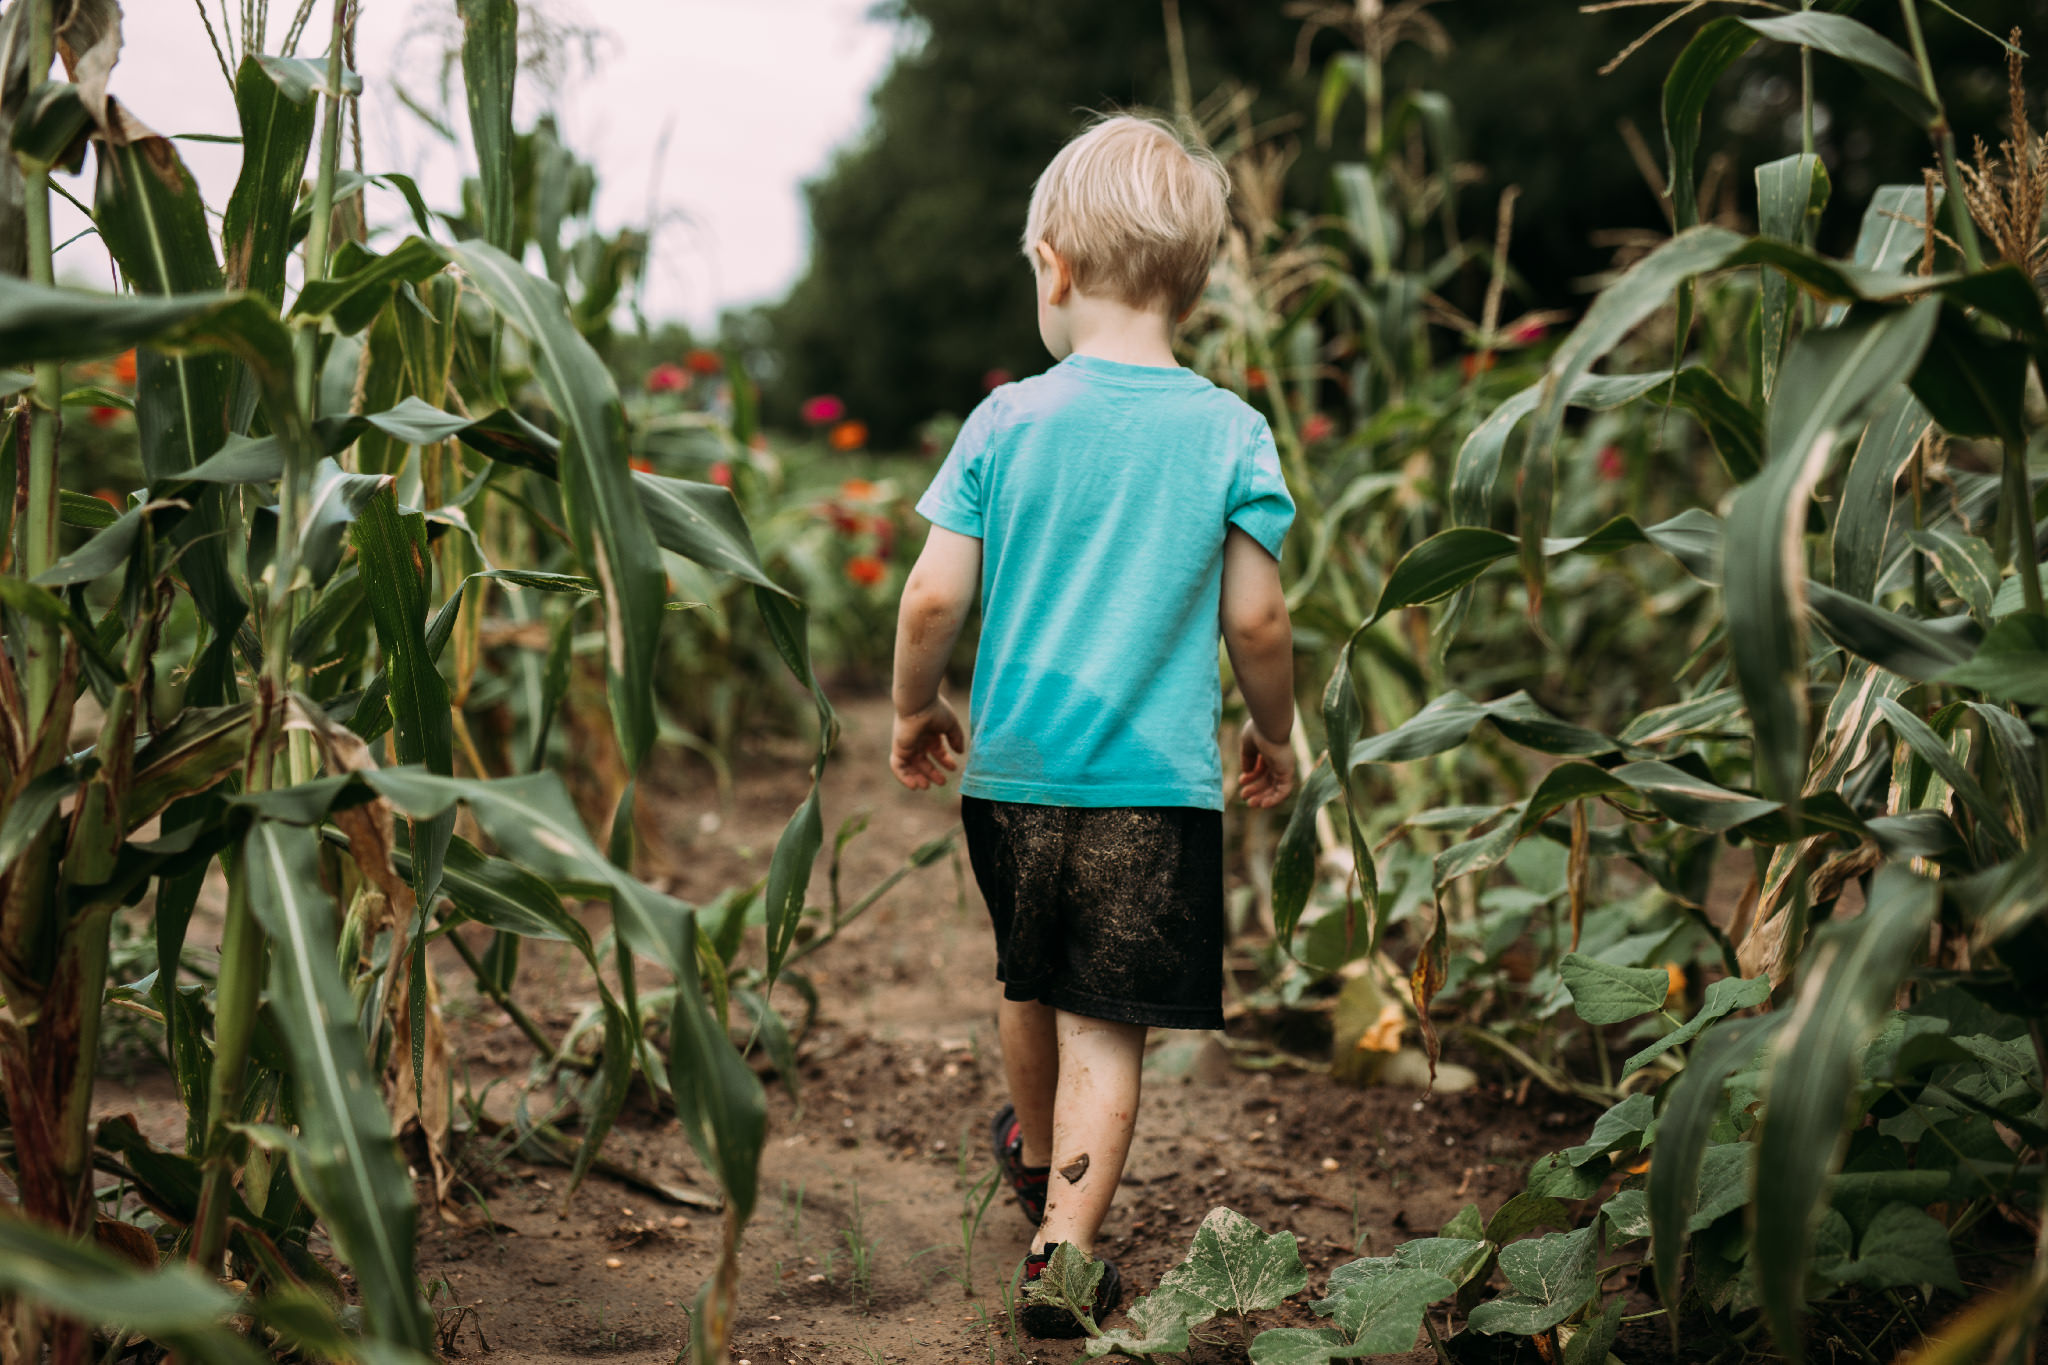 A watchful eye is the key to gardening | Rural Life Photography | Family Photojournalism